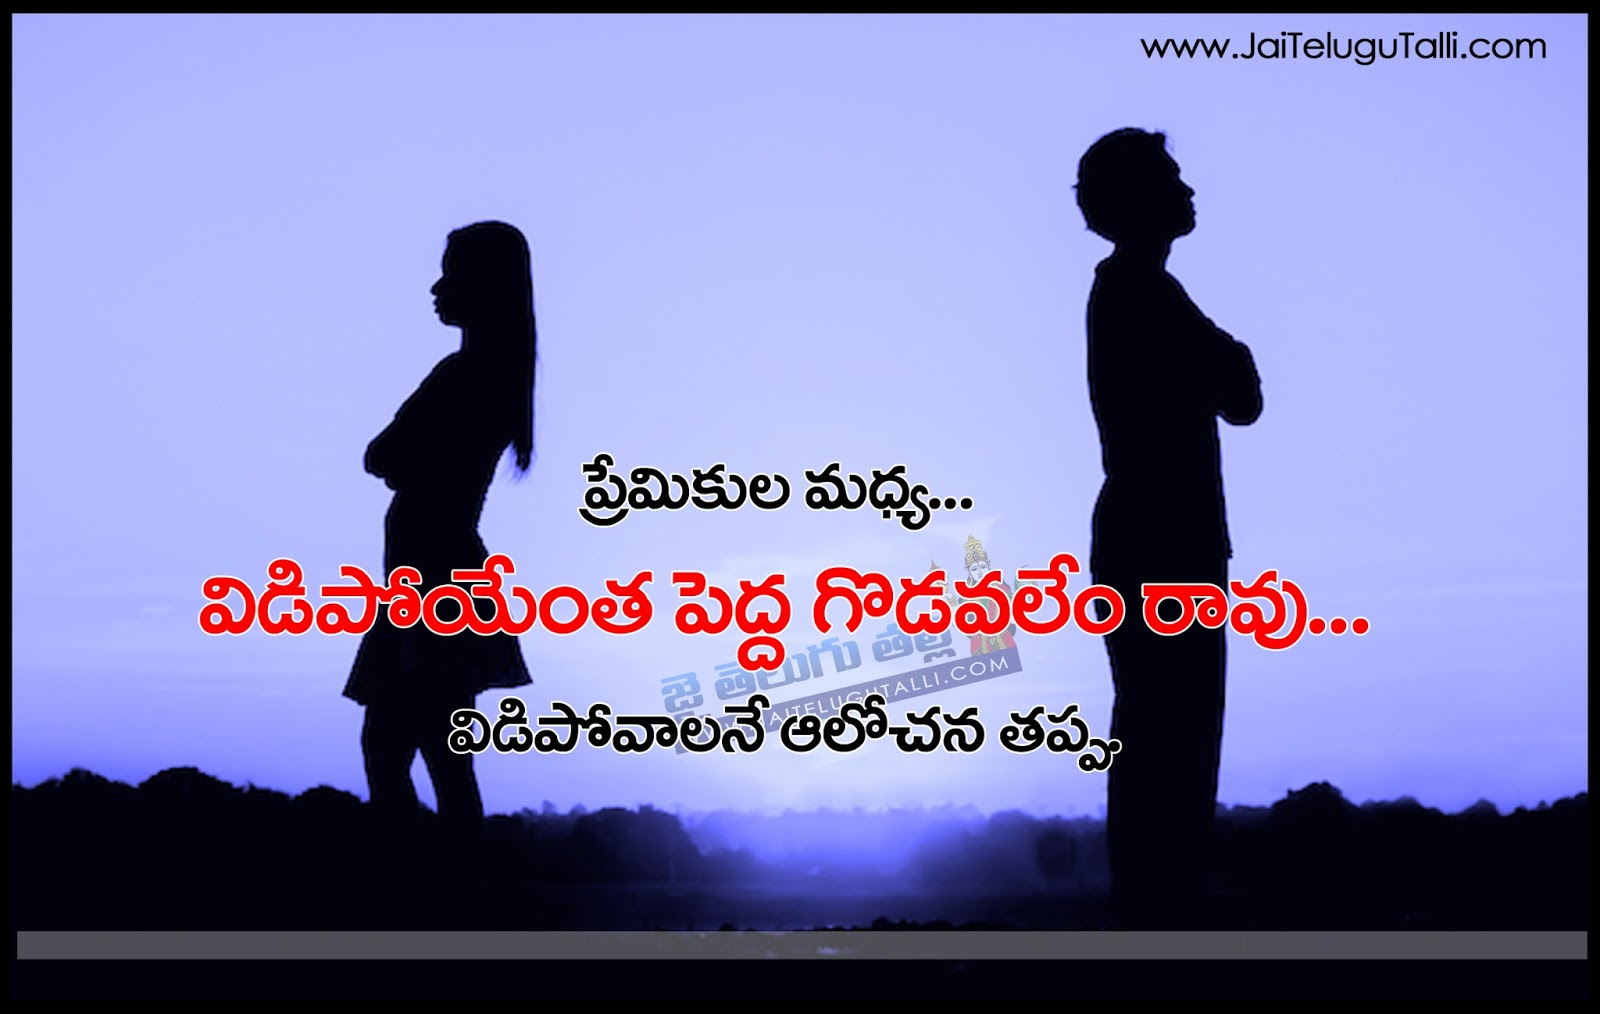 Telugu Love Quotes Alluring Love Quotes In Telugu Hd Pictures Cute Heart Touching Love